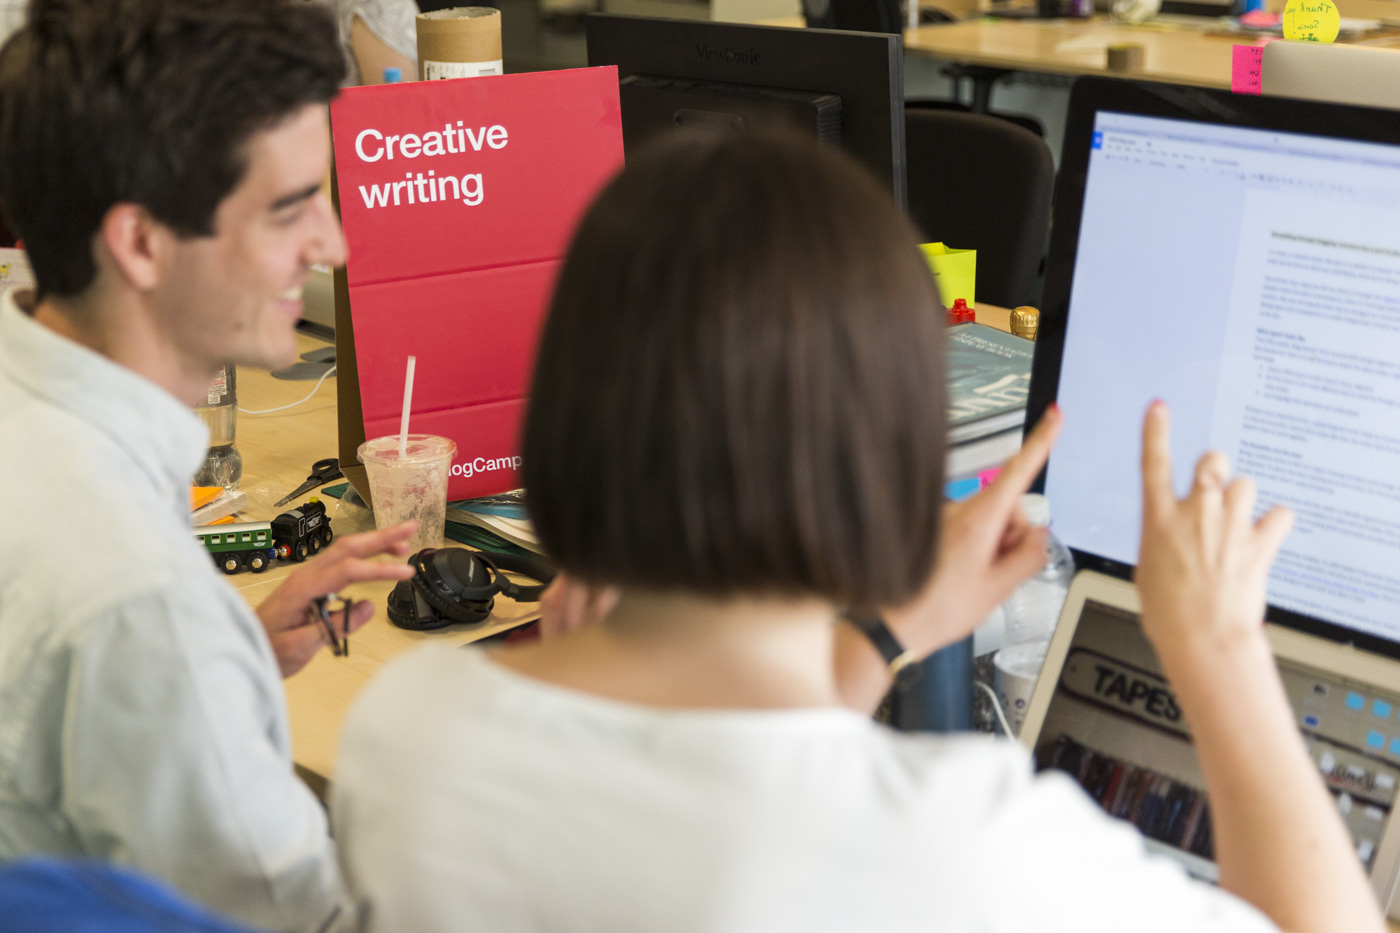 creative writing job Creative writing on my dream job - no more fails with our trustworthy writing services compose a timed custom essay with our assistance and make your professors shocked experienced writers working in the service will write your task within the deadline.